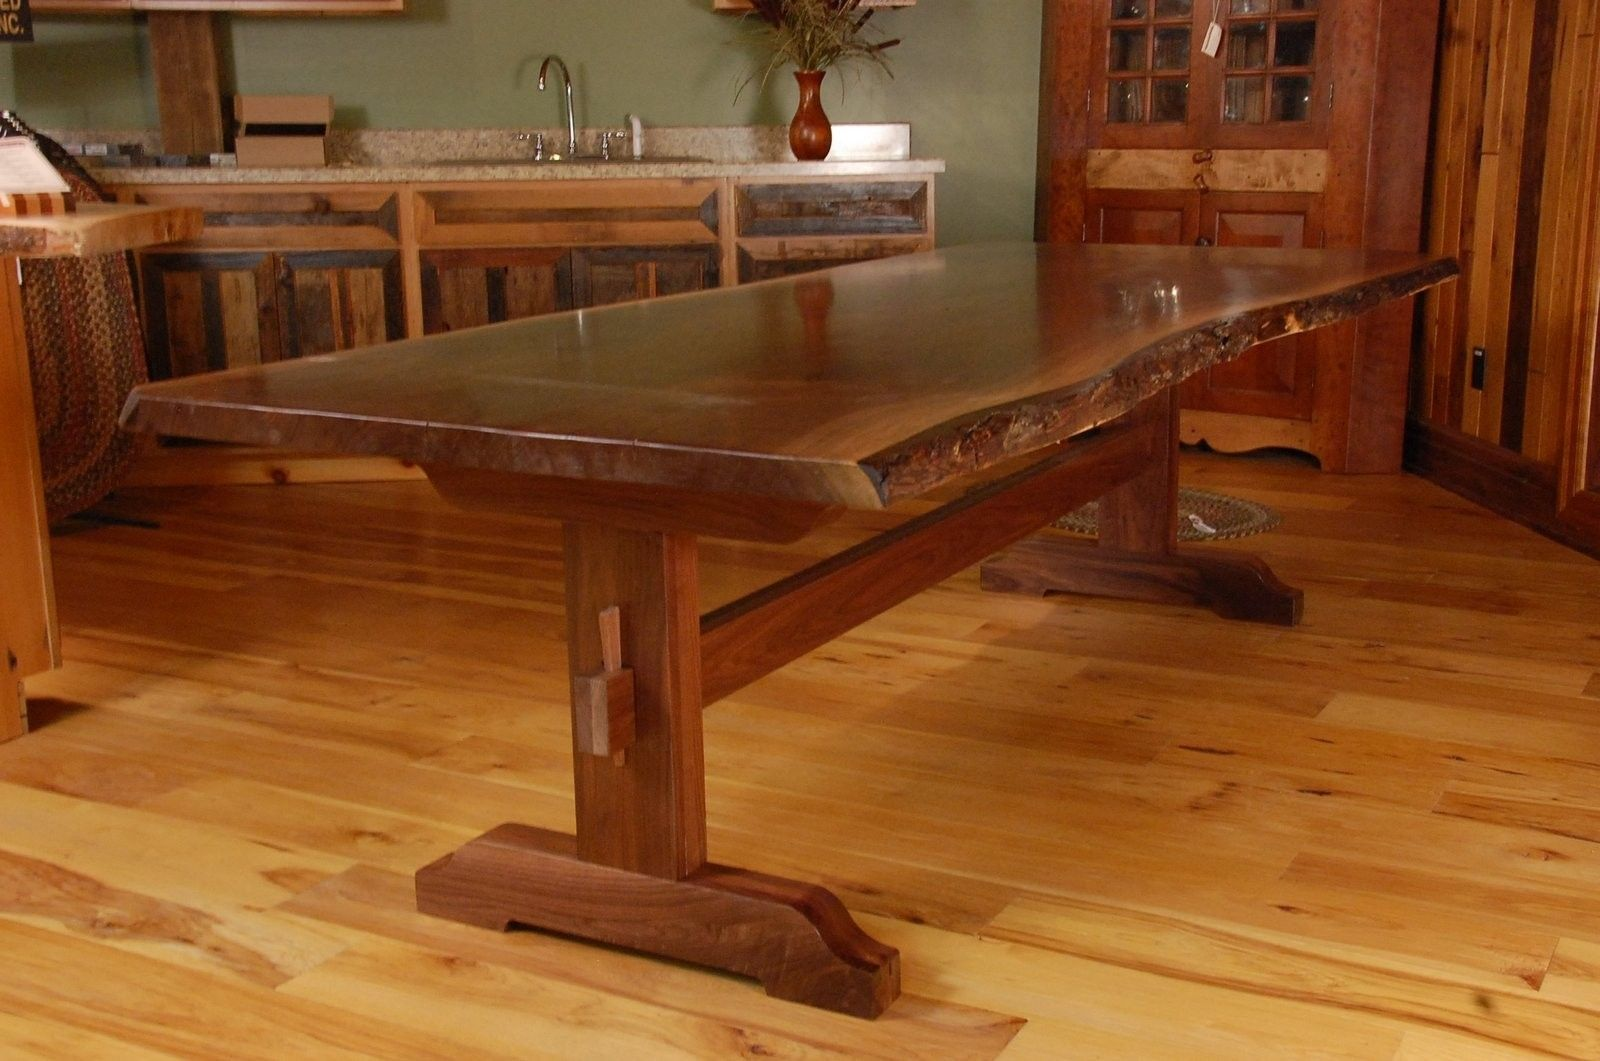 Hand Made Live Edge Walnut Slab Trestle Dining Table by Corey Morgan Wood Works : CustomMade.com